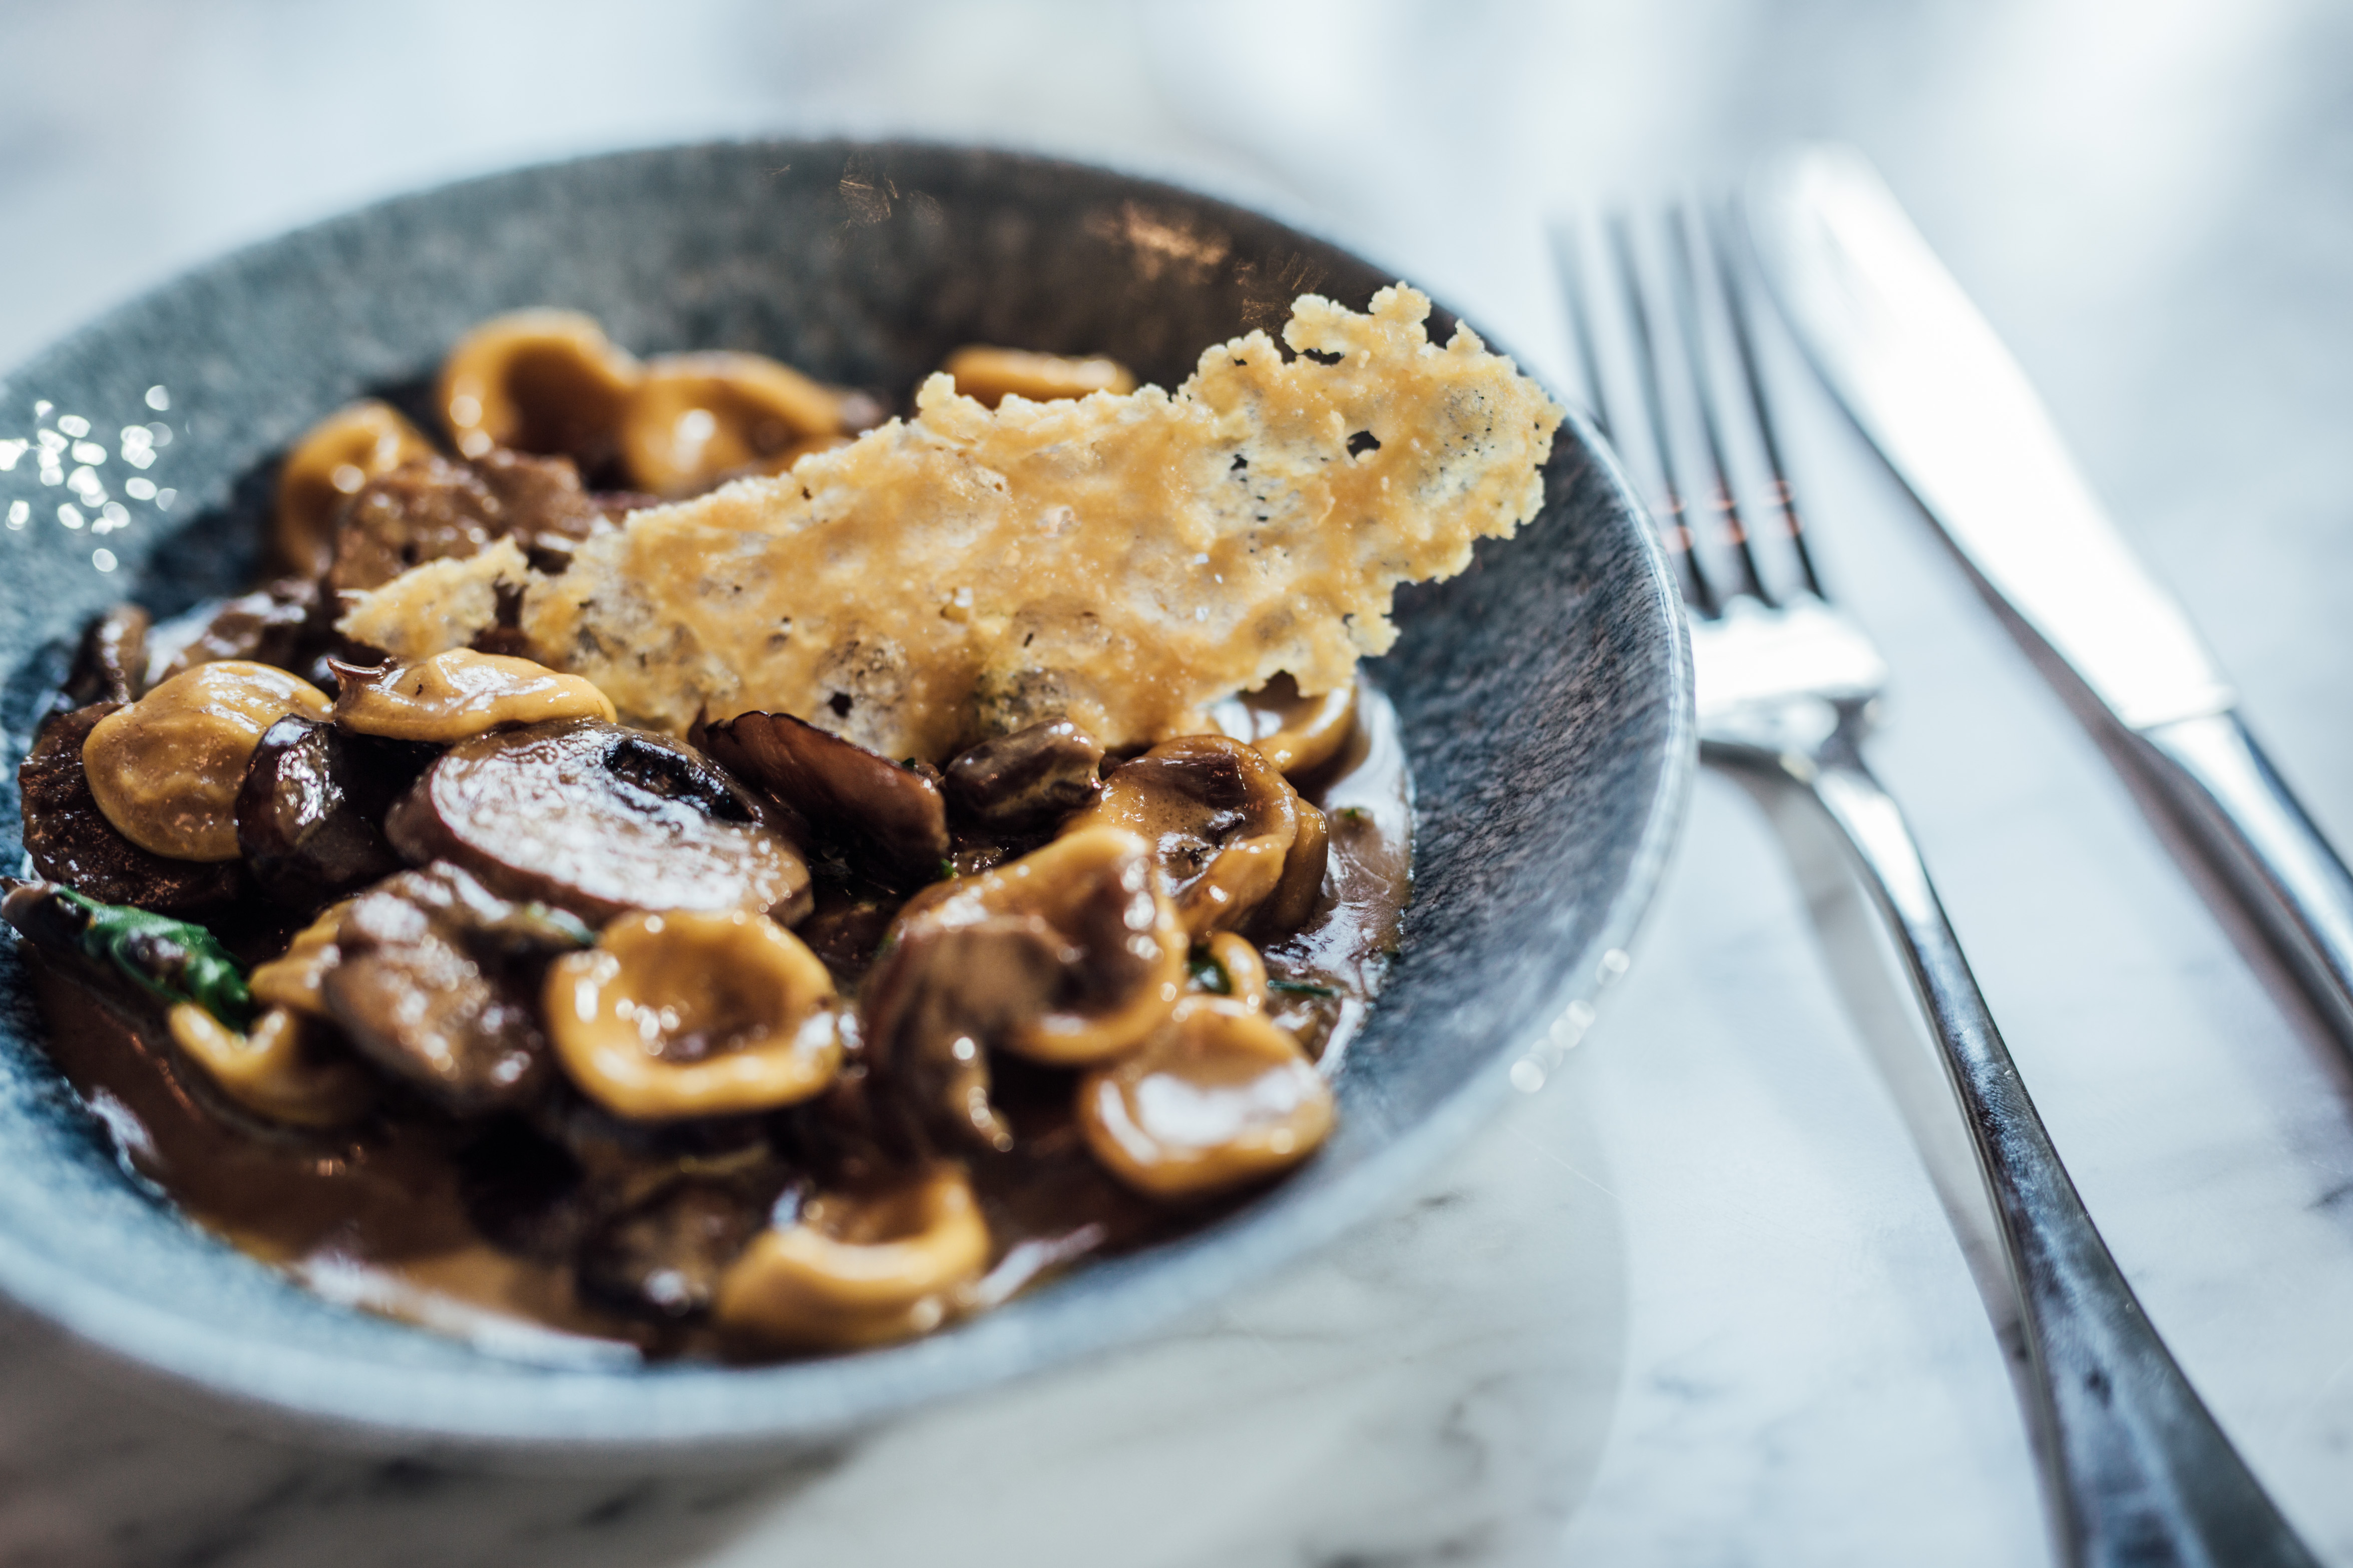 Pasta - Classic Italian pasta tastes to be enjoyed as part of your starter